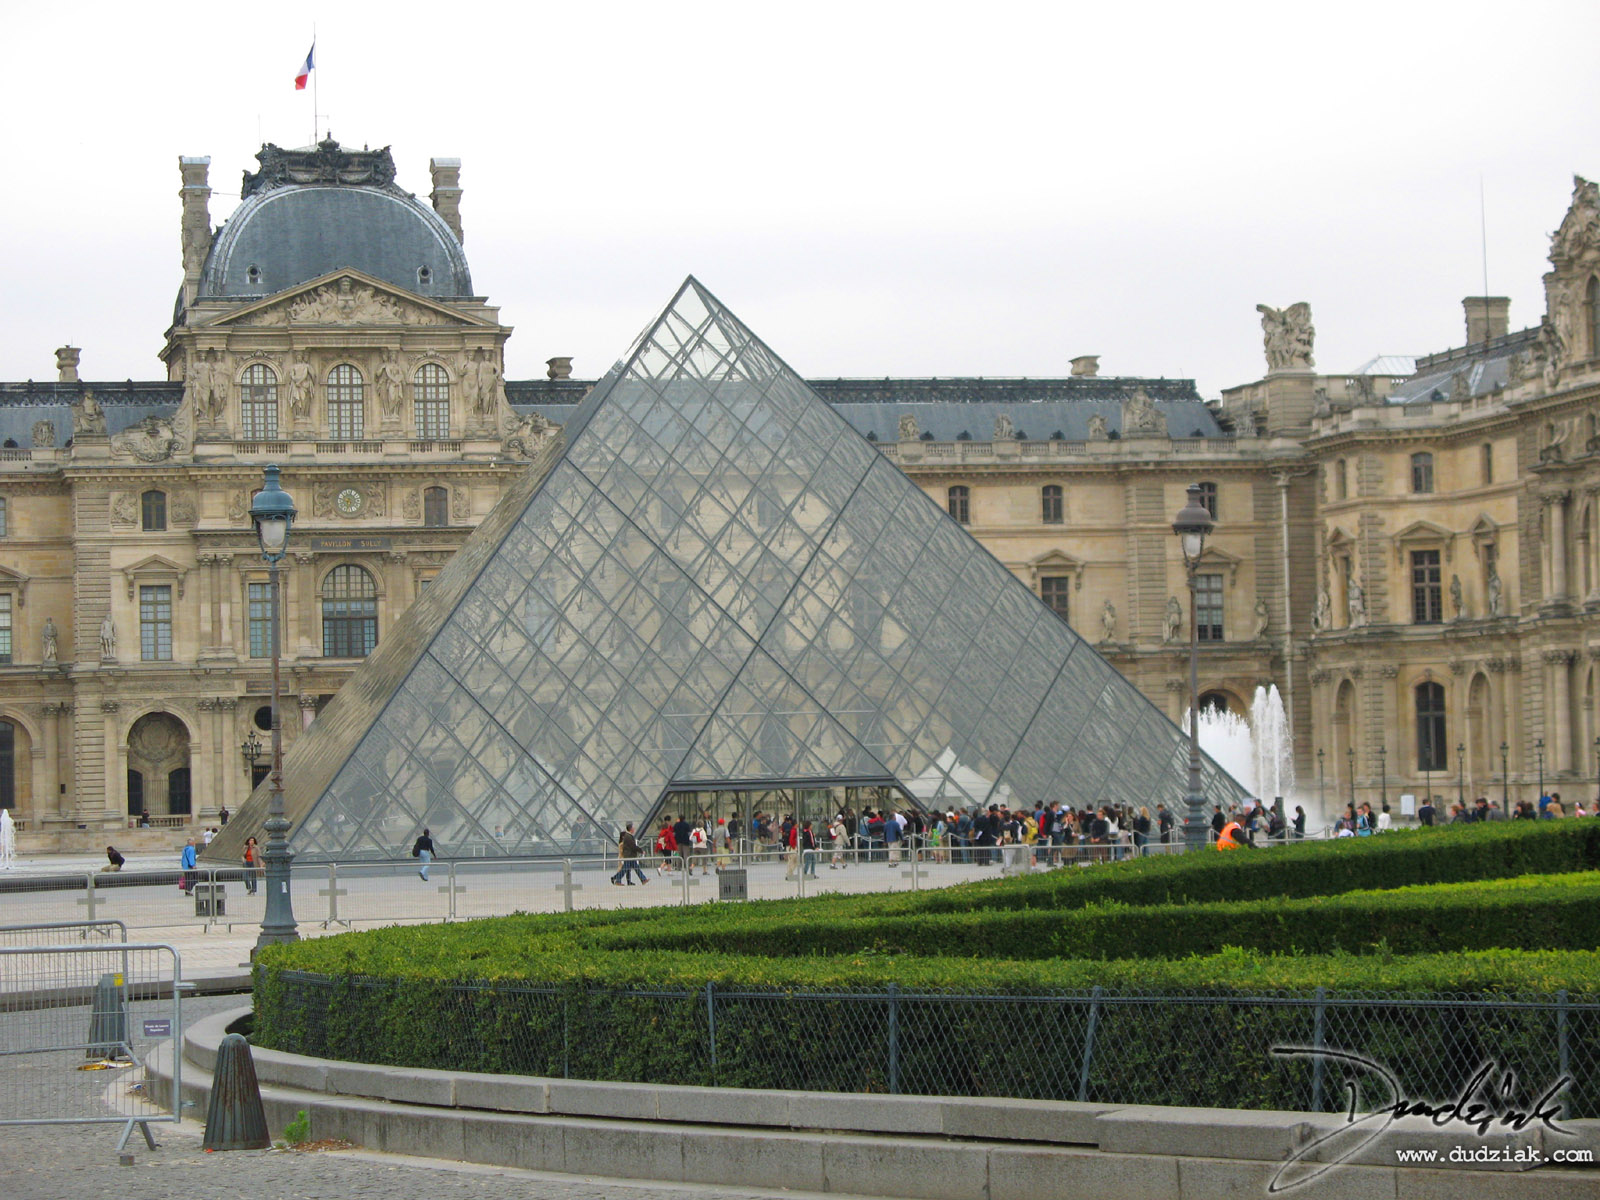 Picture of the Louvre pyramid in Paris, France